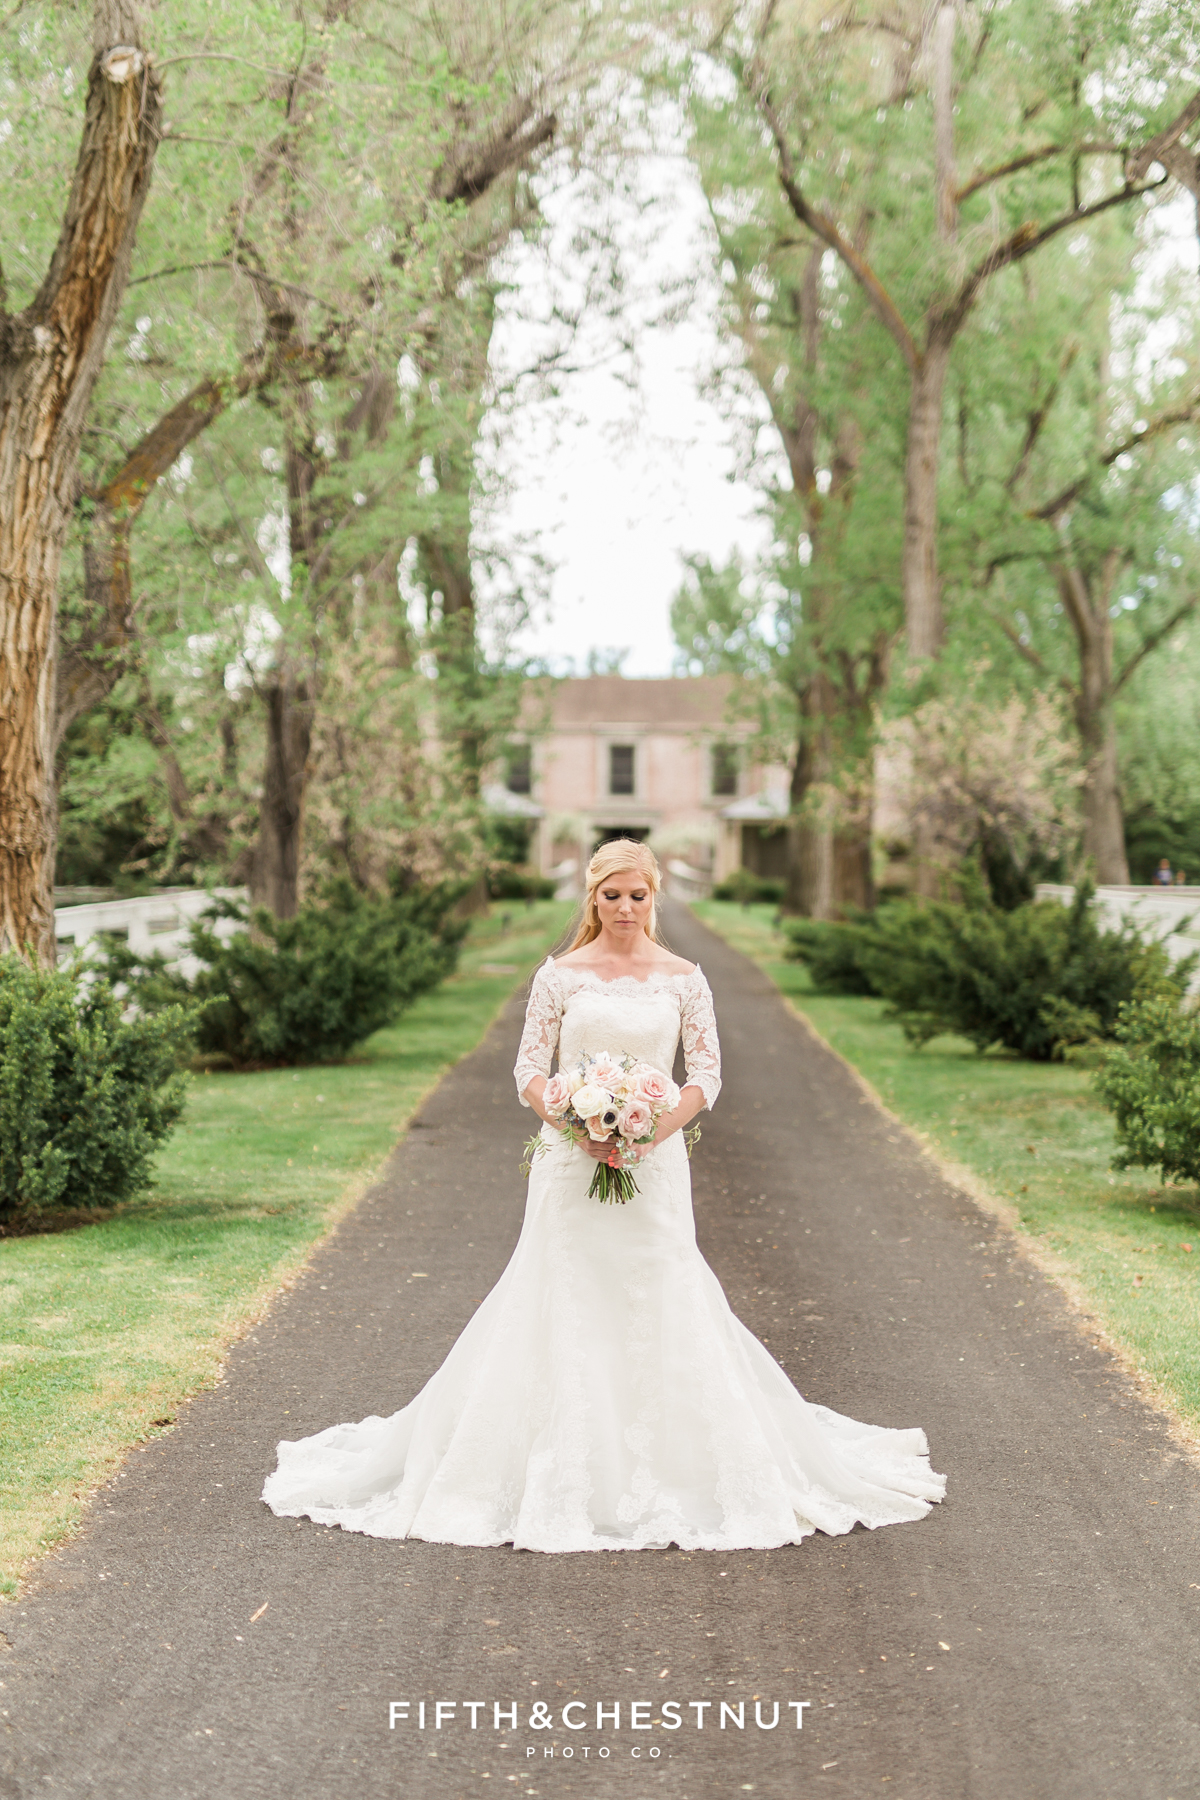 Bride standing in oak-lined path leading to an elegant private estate